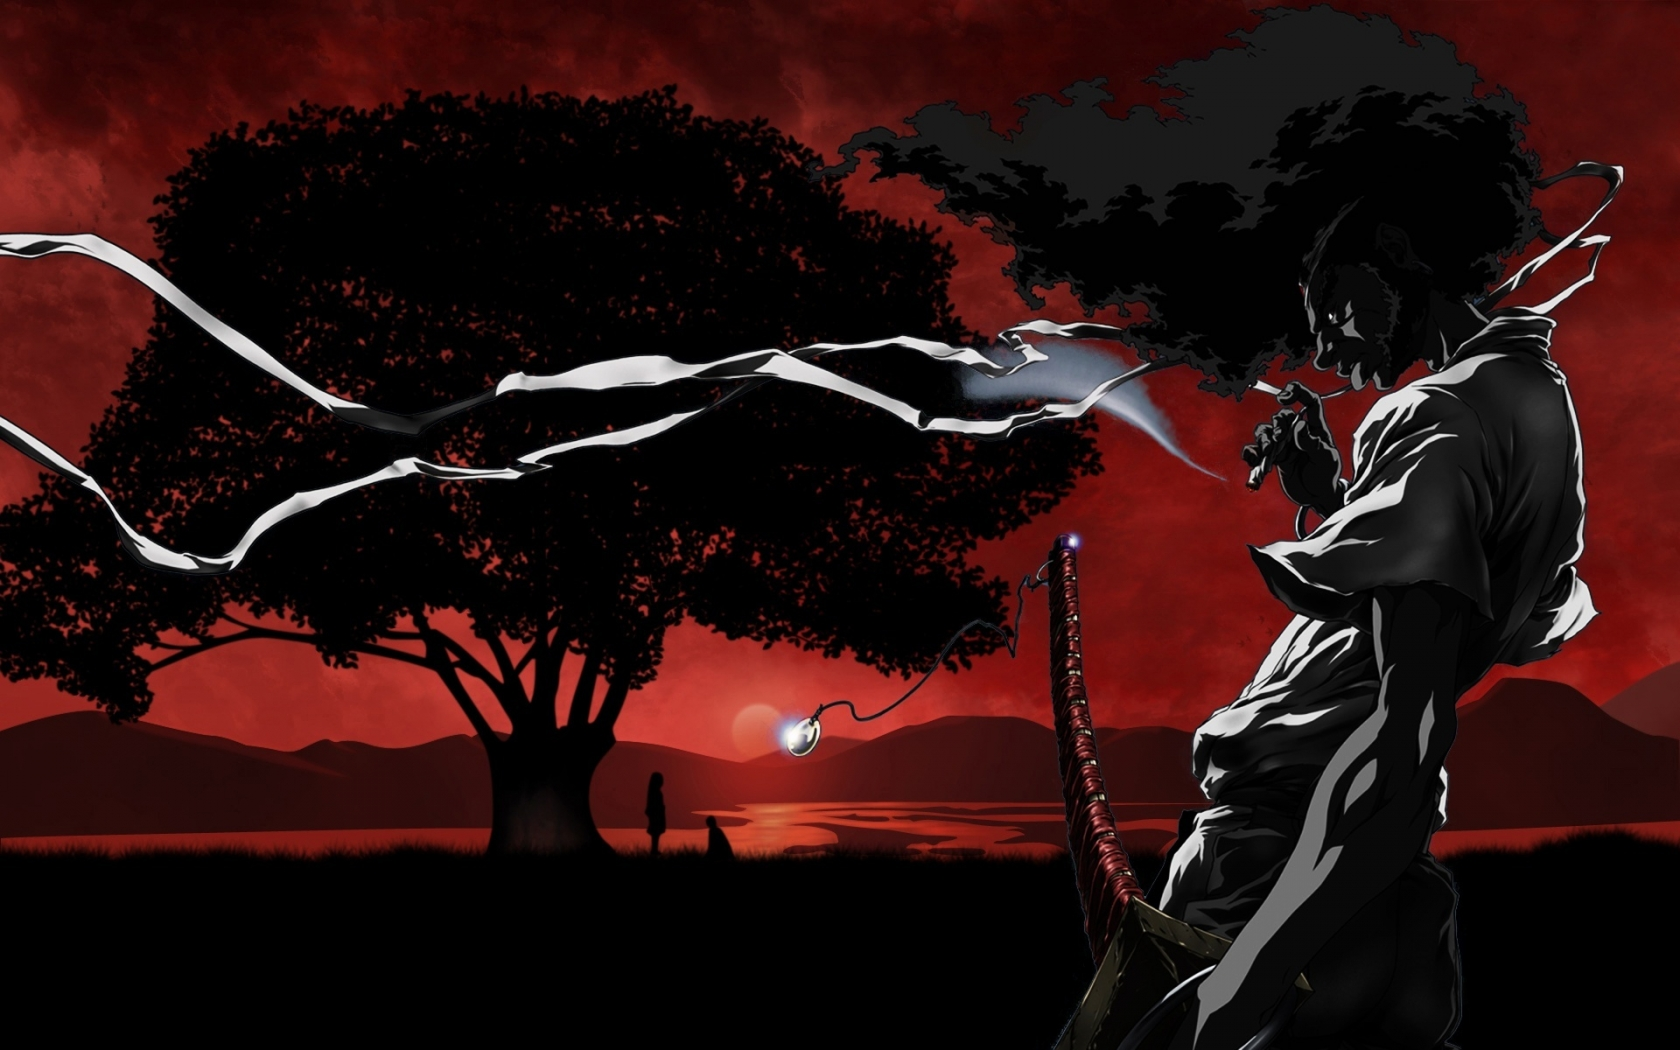 Sundown Afro Samurai for 1680 x 1050 widescreen resolution